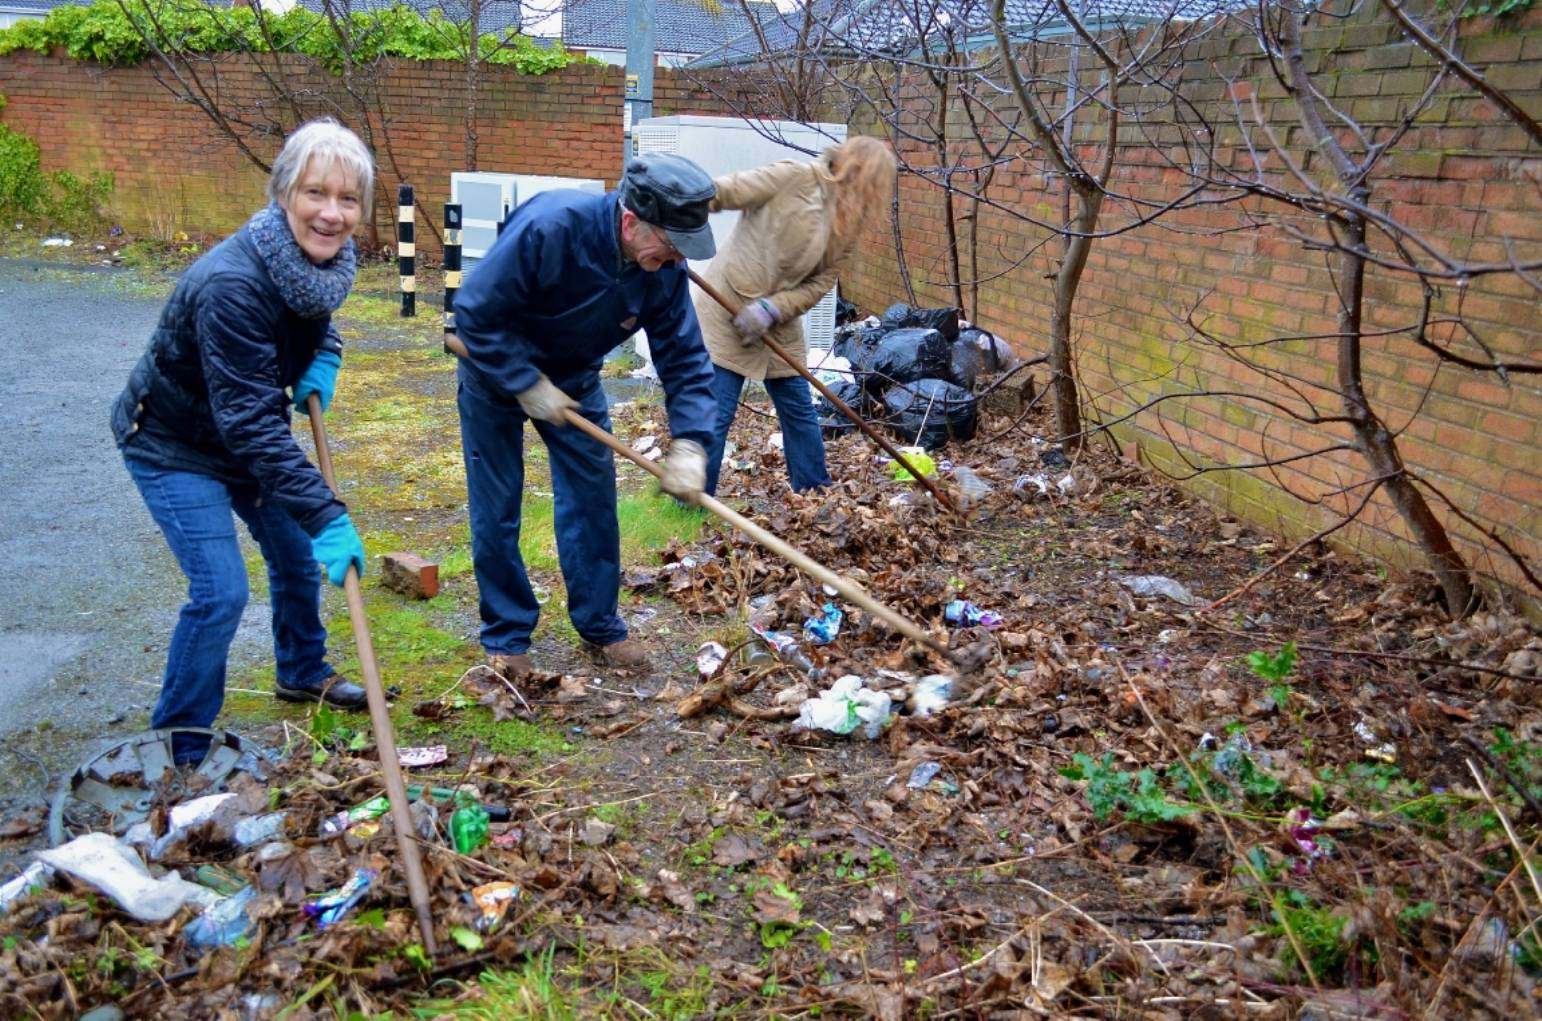 WAR WAGED ON TOWN'S LITTER LOUTS